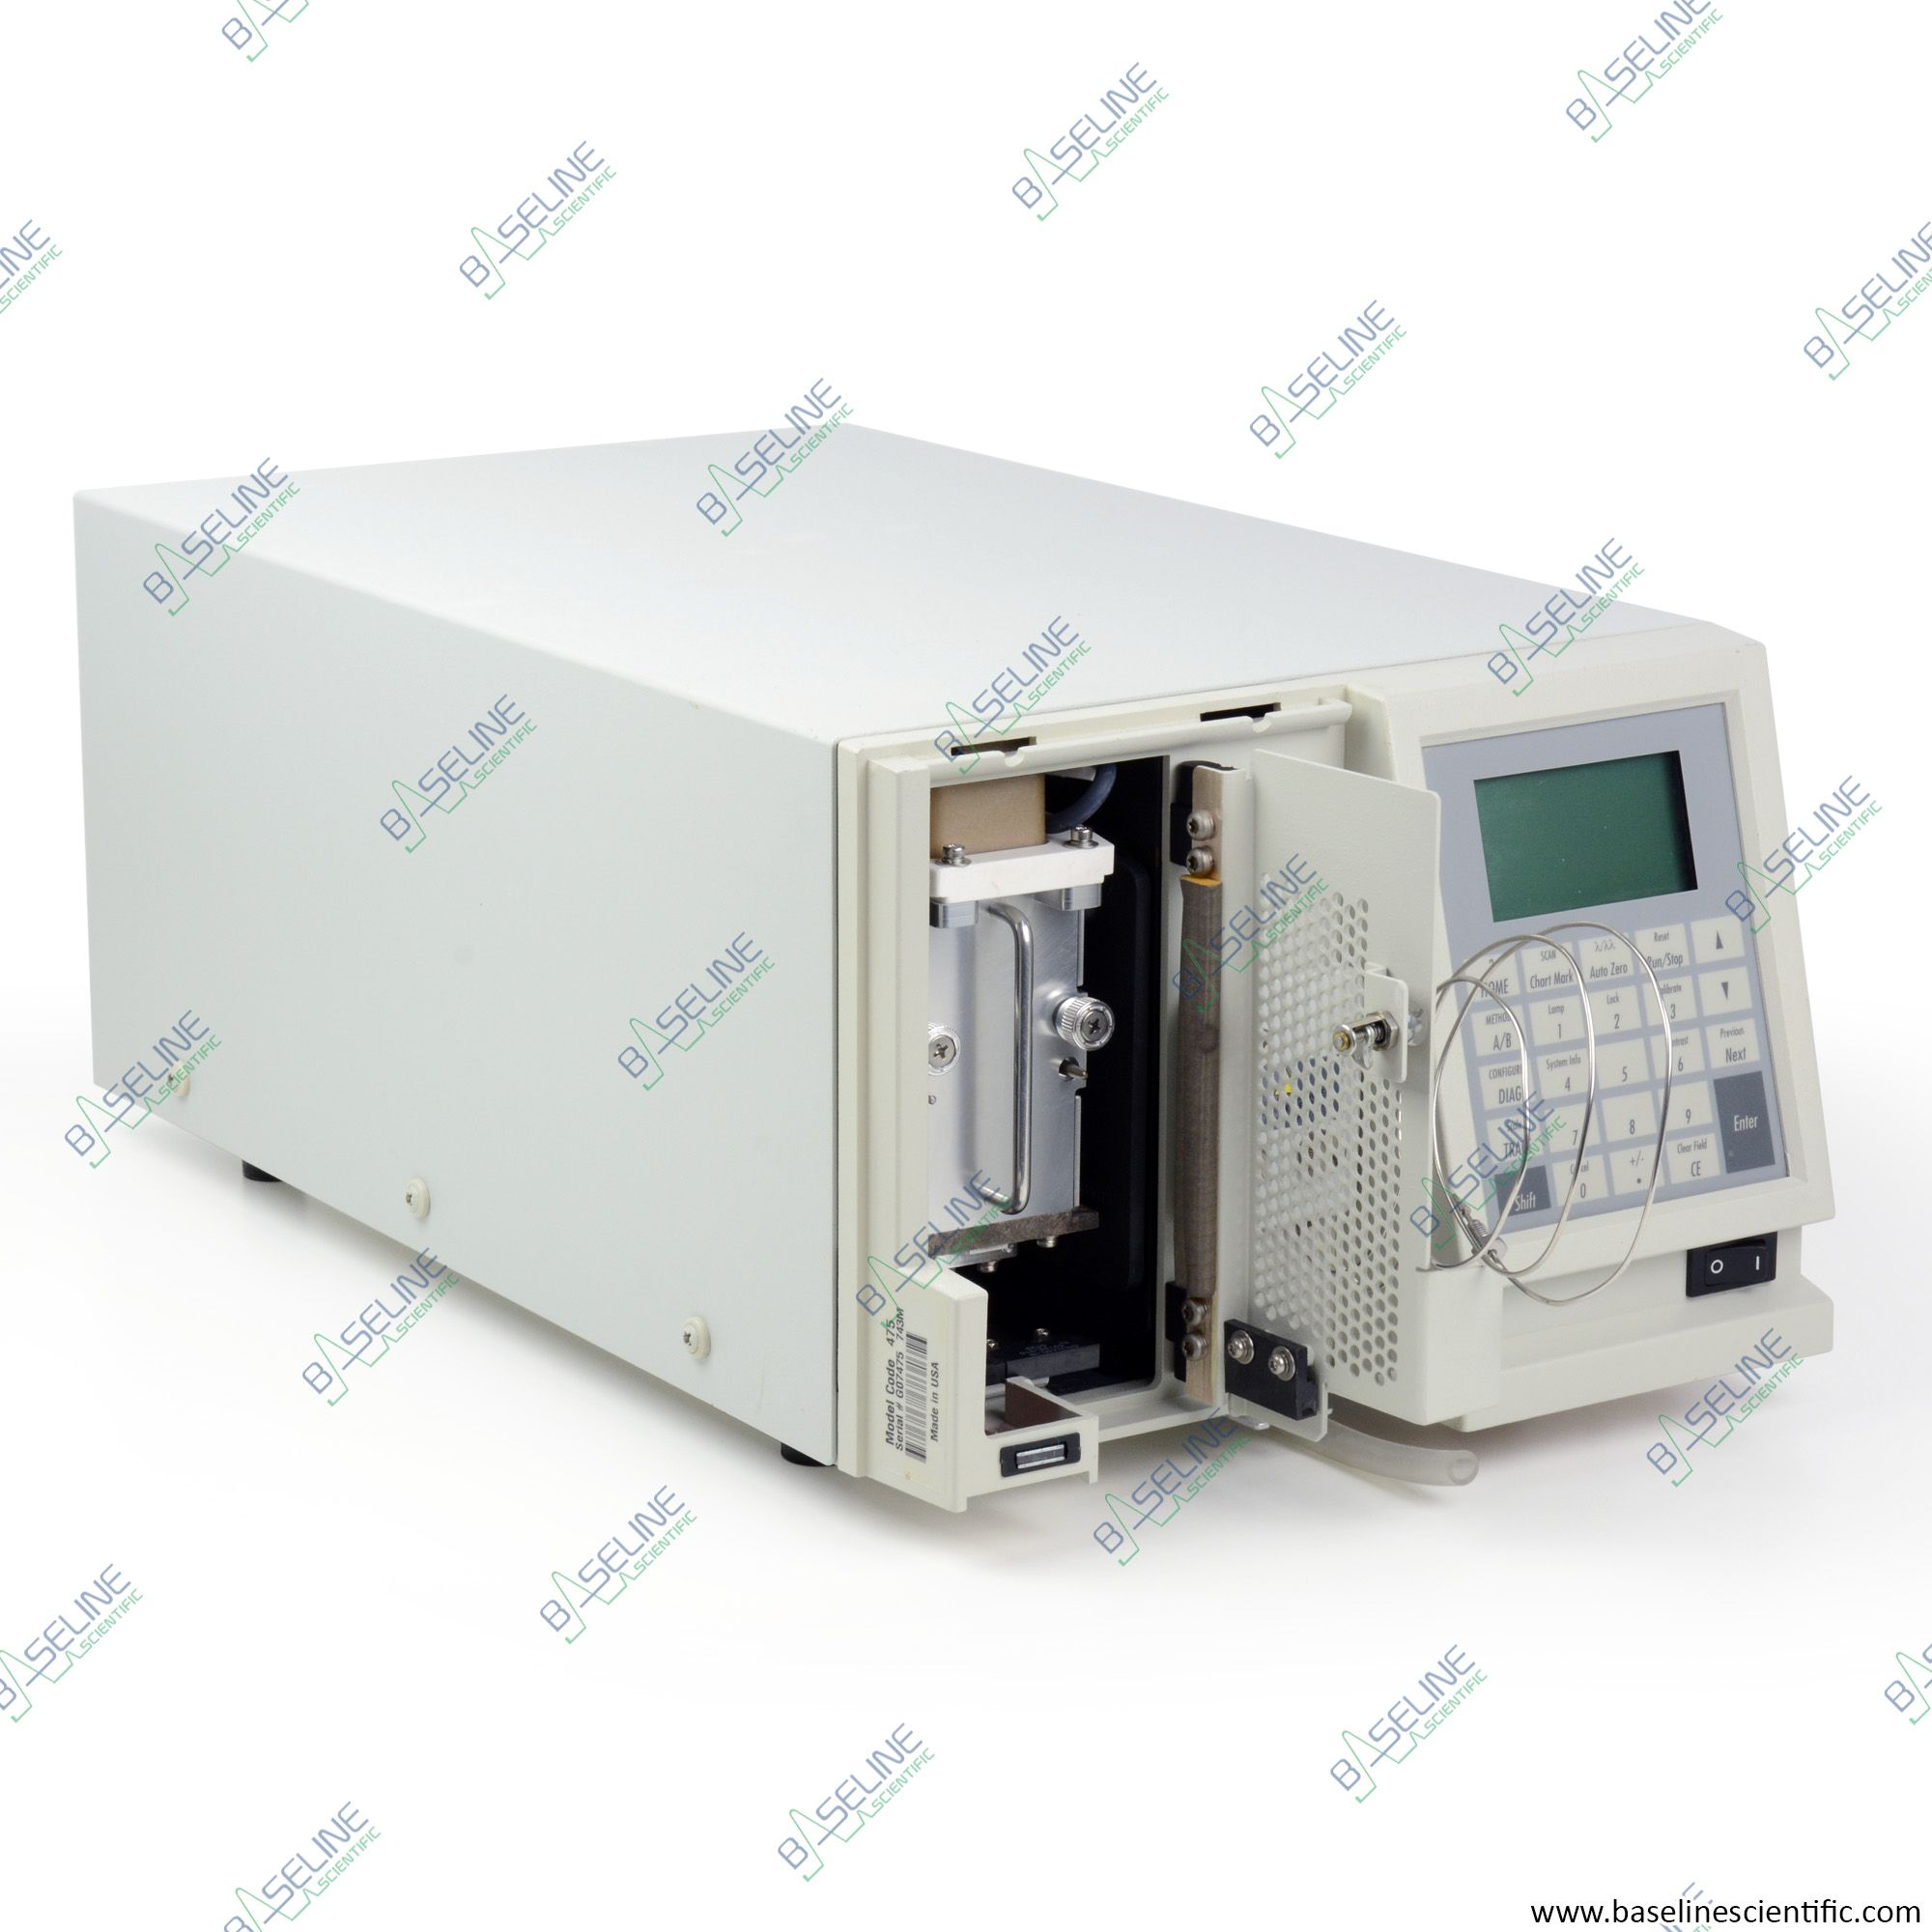 Refurbished Waters 2475 Multi Fluorescence Detector with ONE YEAR WARRANTY